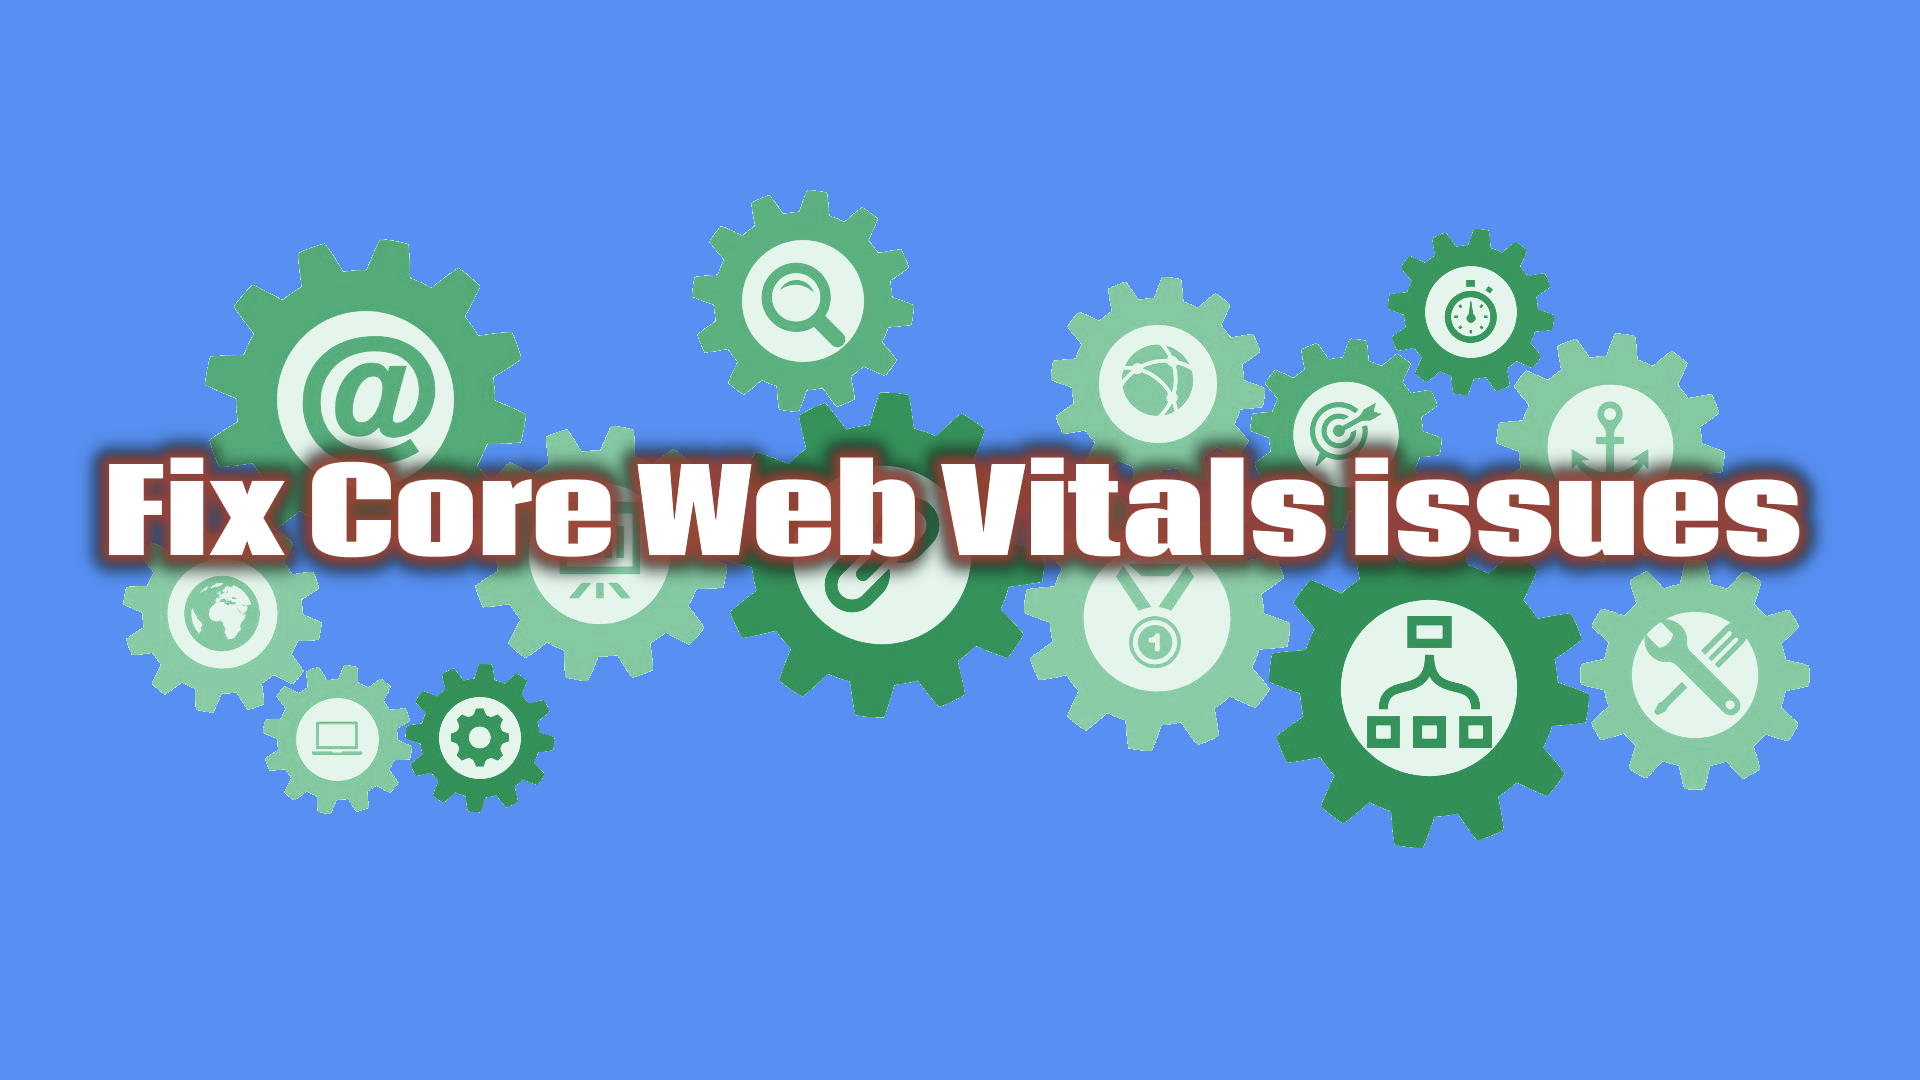 Fix Core Web Vitals issues